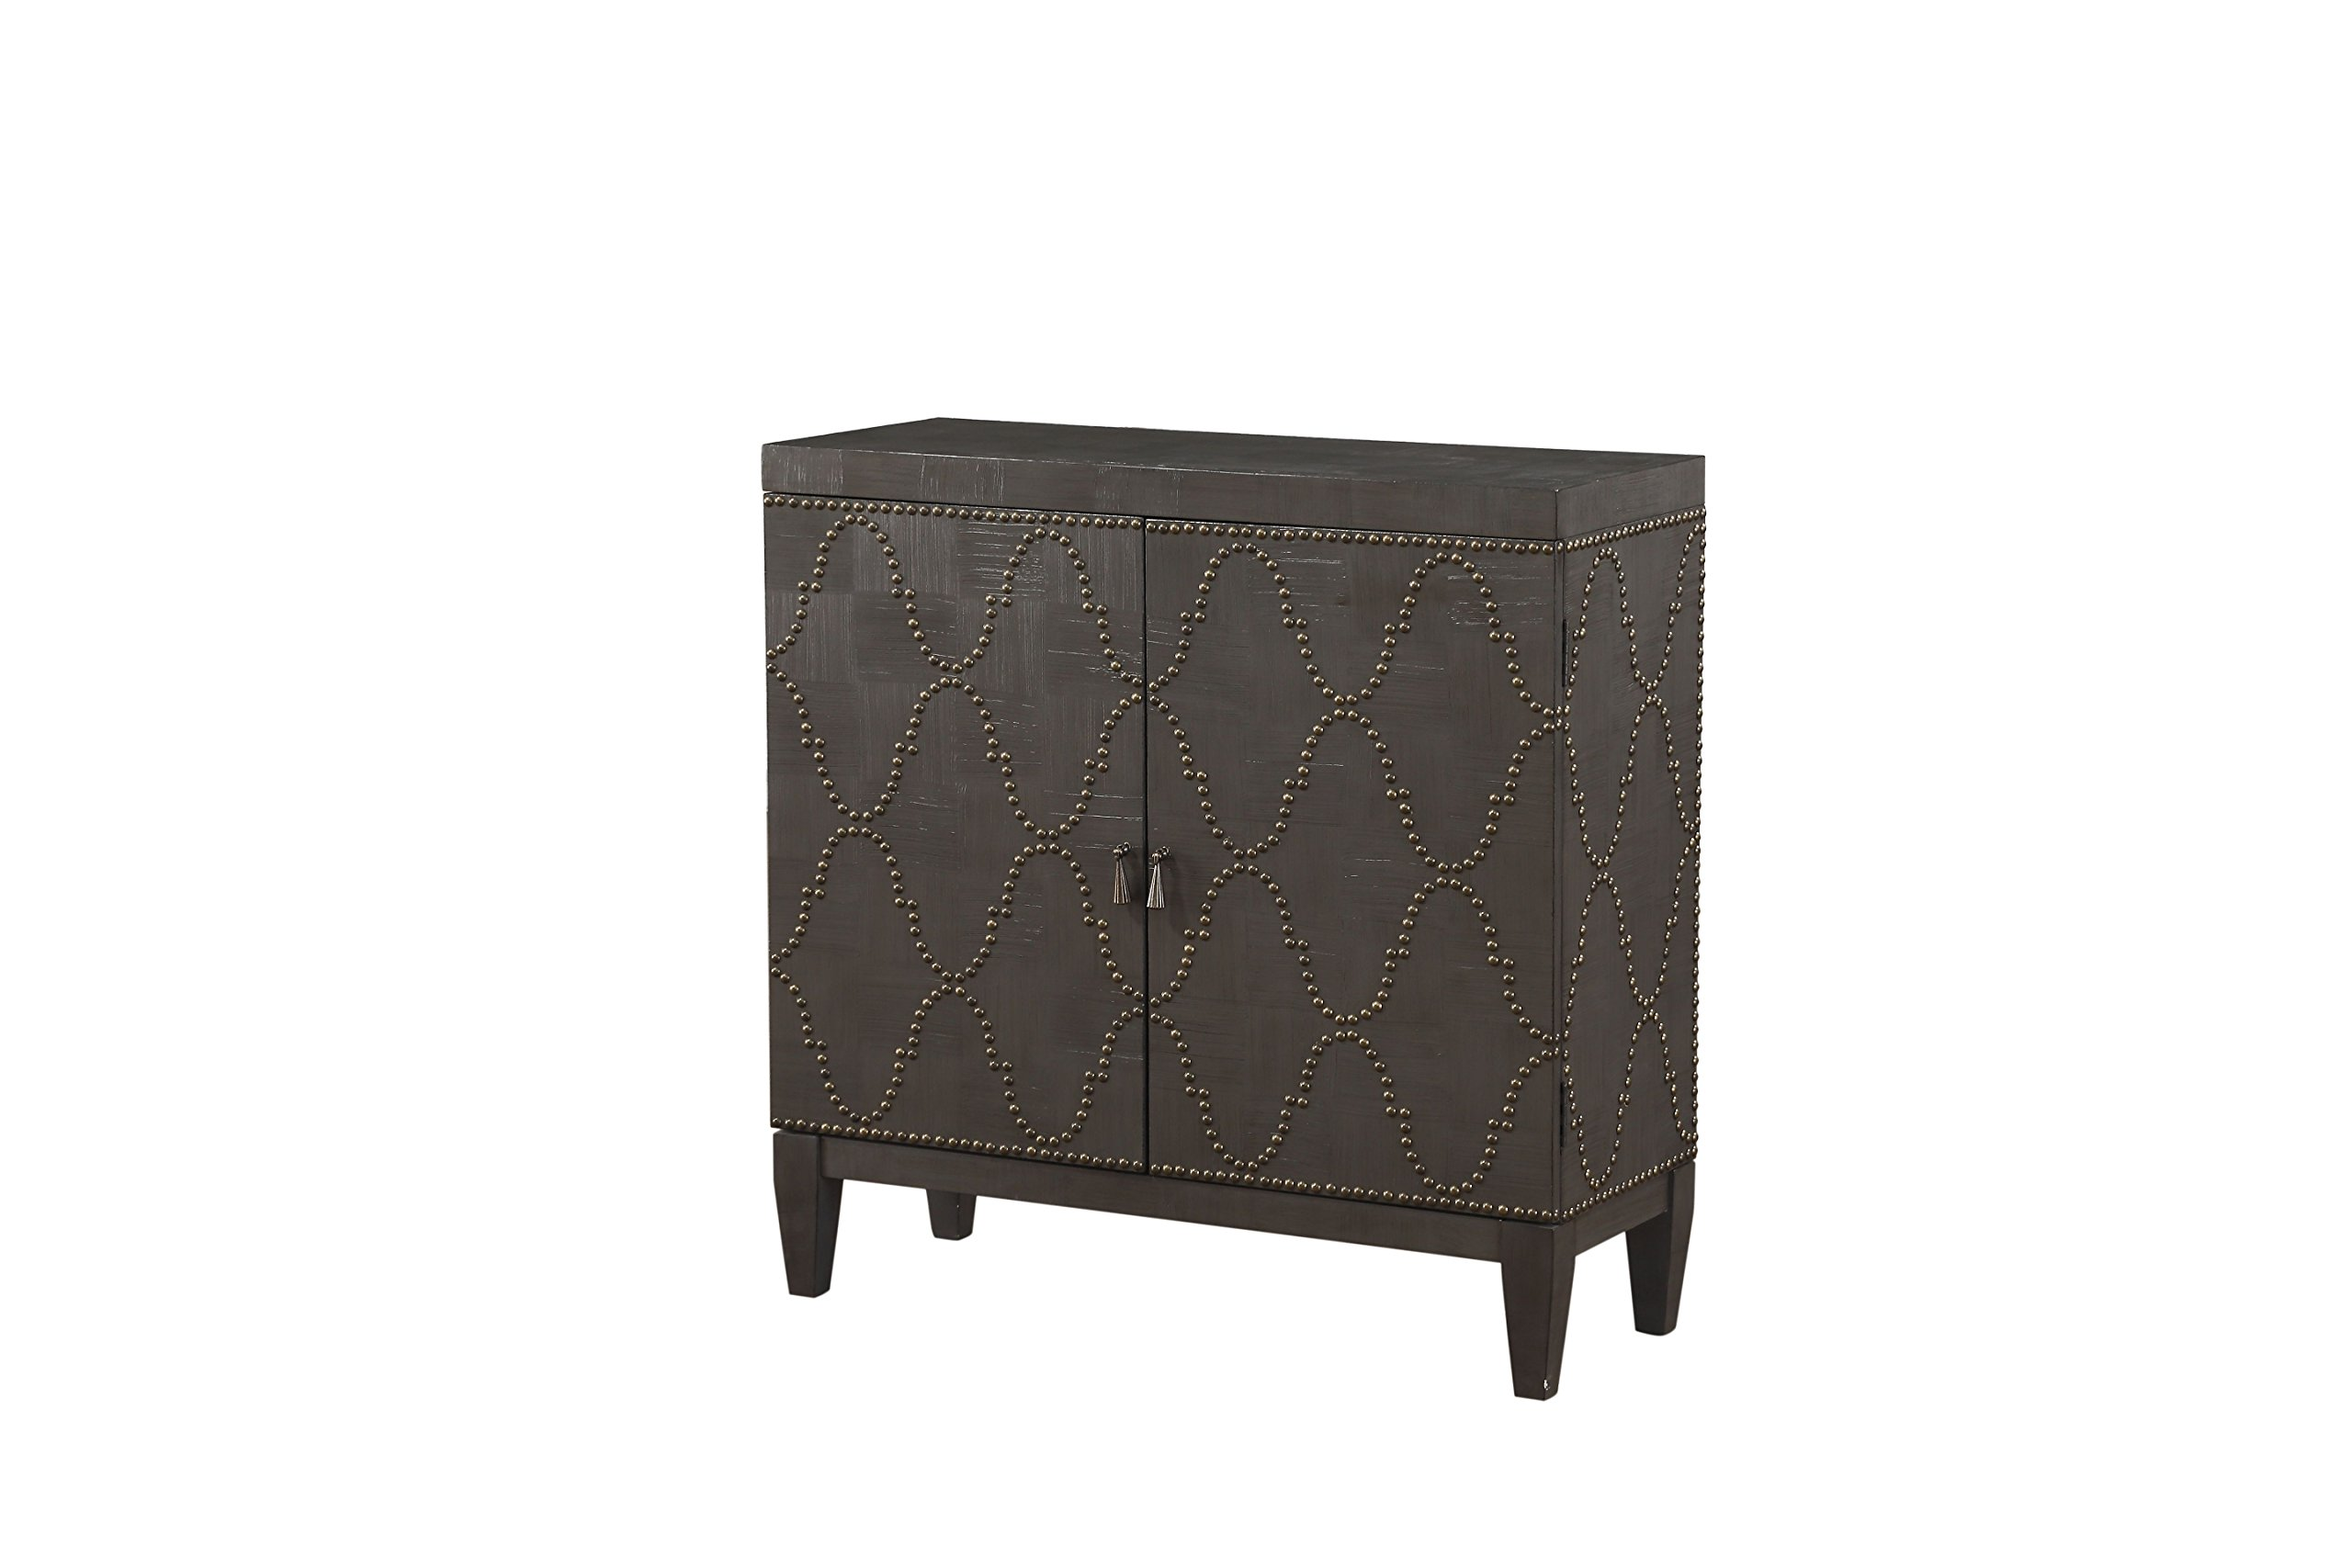 ACME Furniture 90298 Cherie Console Table, Antique Black by Acme Furniture (Image #1)